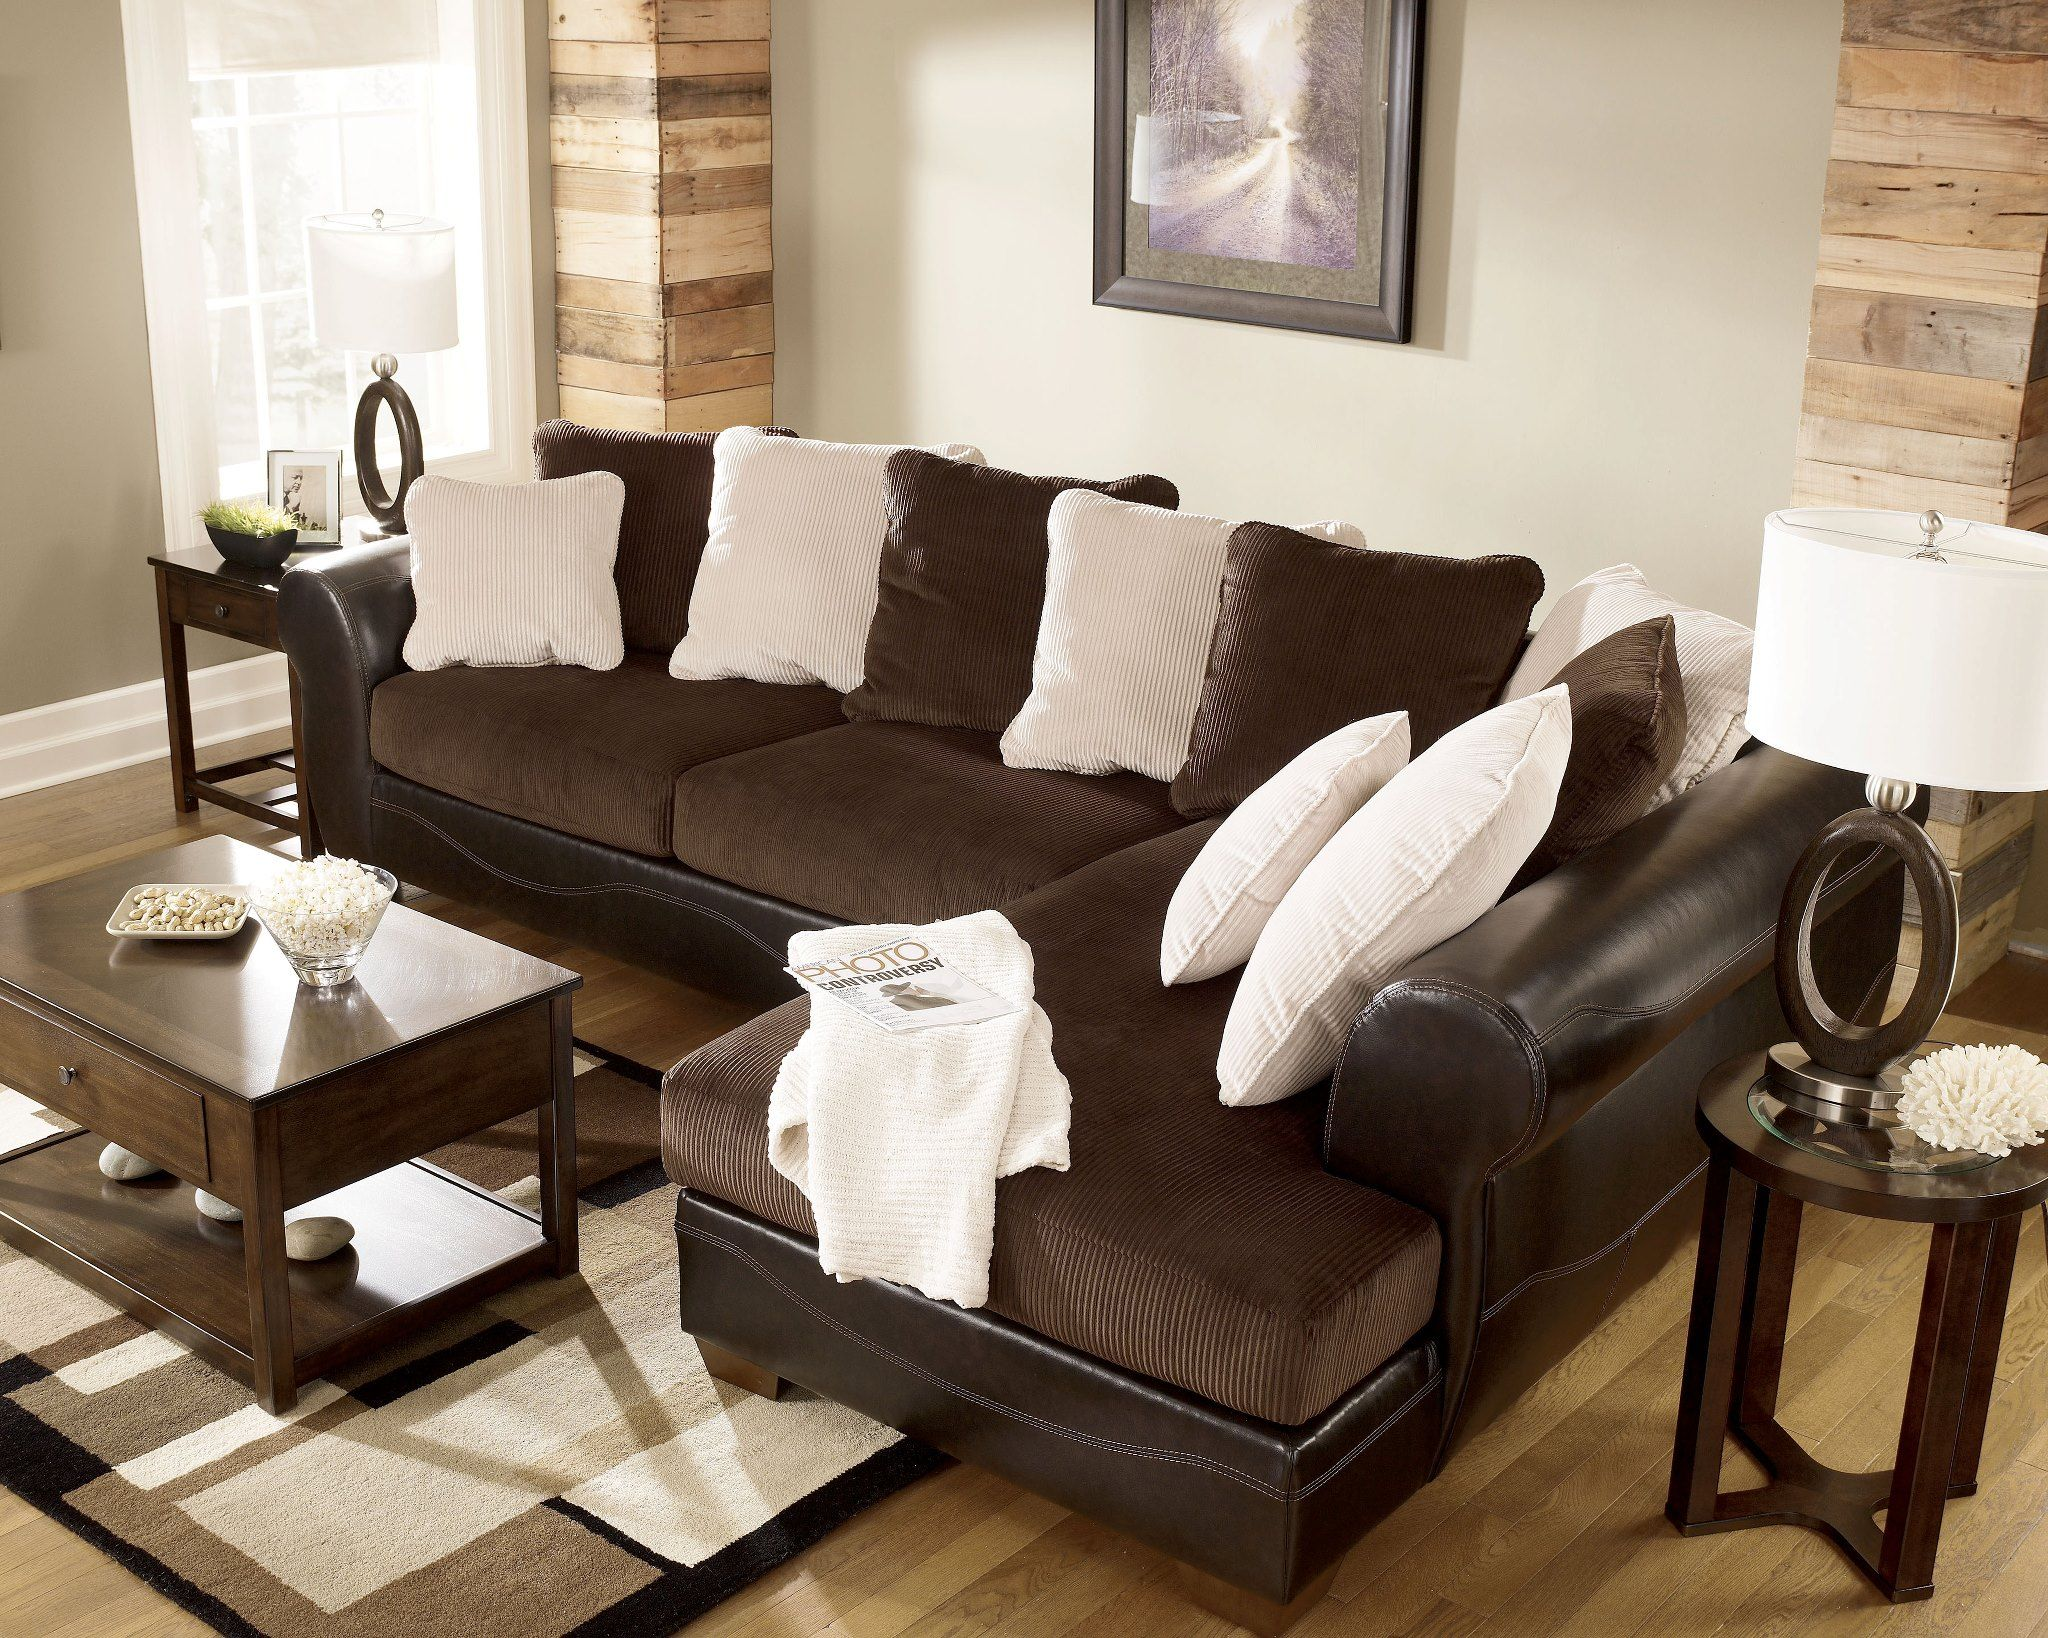 Sofas Victory Chocolate Sectional Ashley Furniture Furniture Ashley Furniture Ashley Furniture Homestore